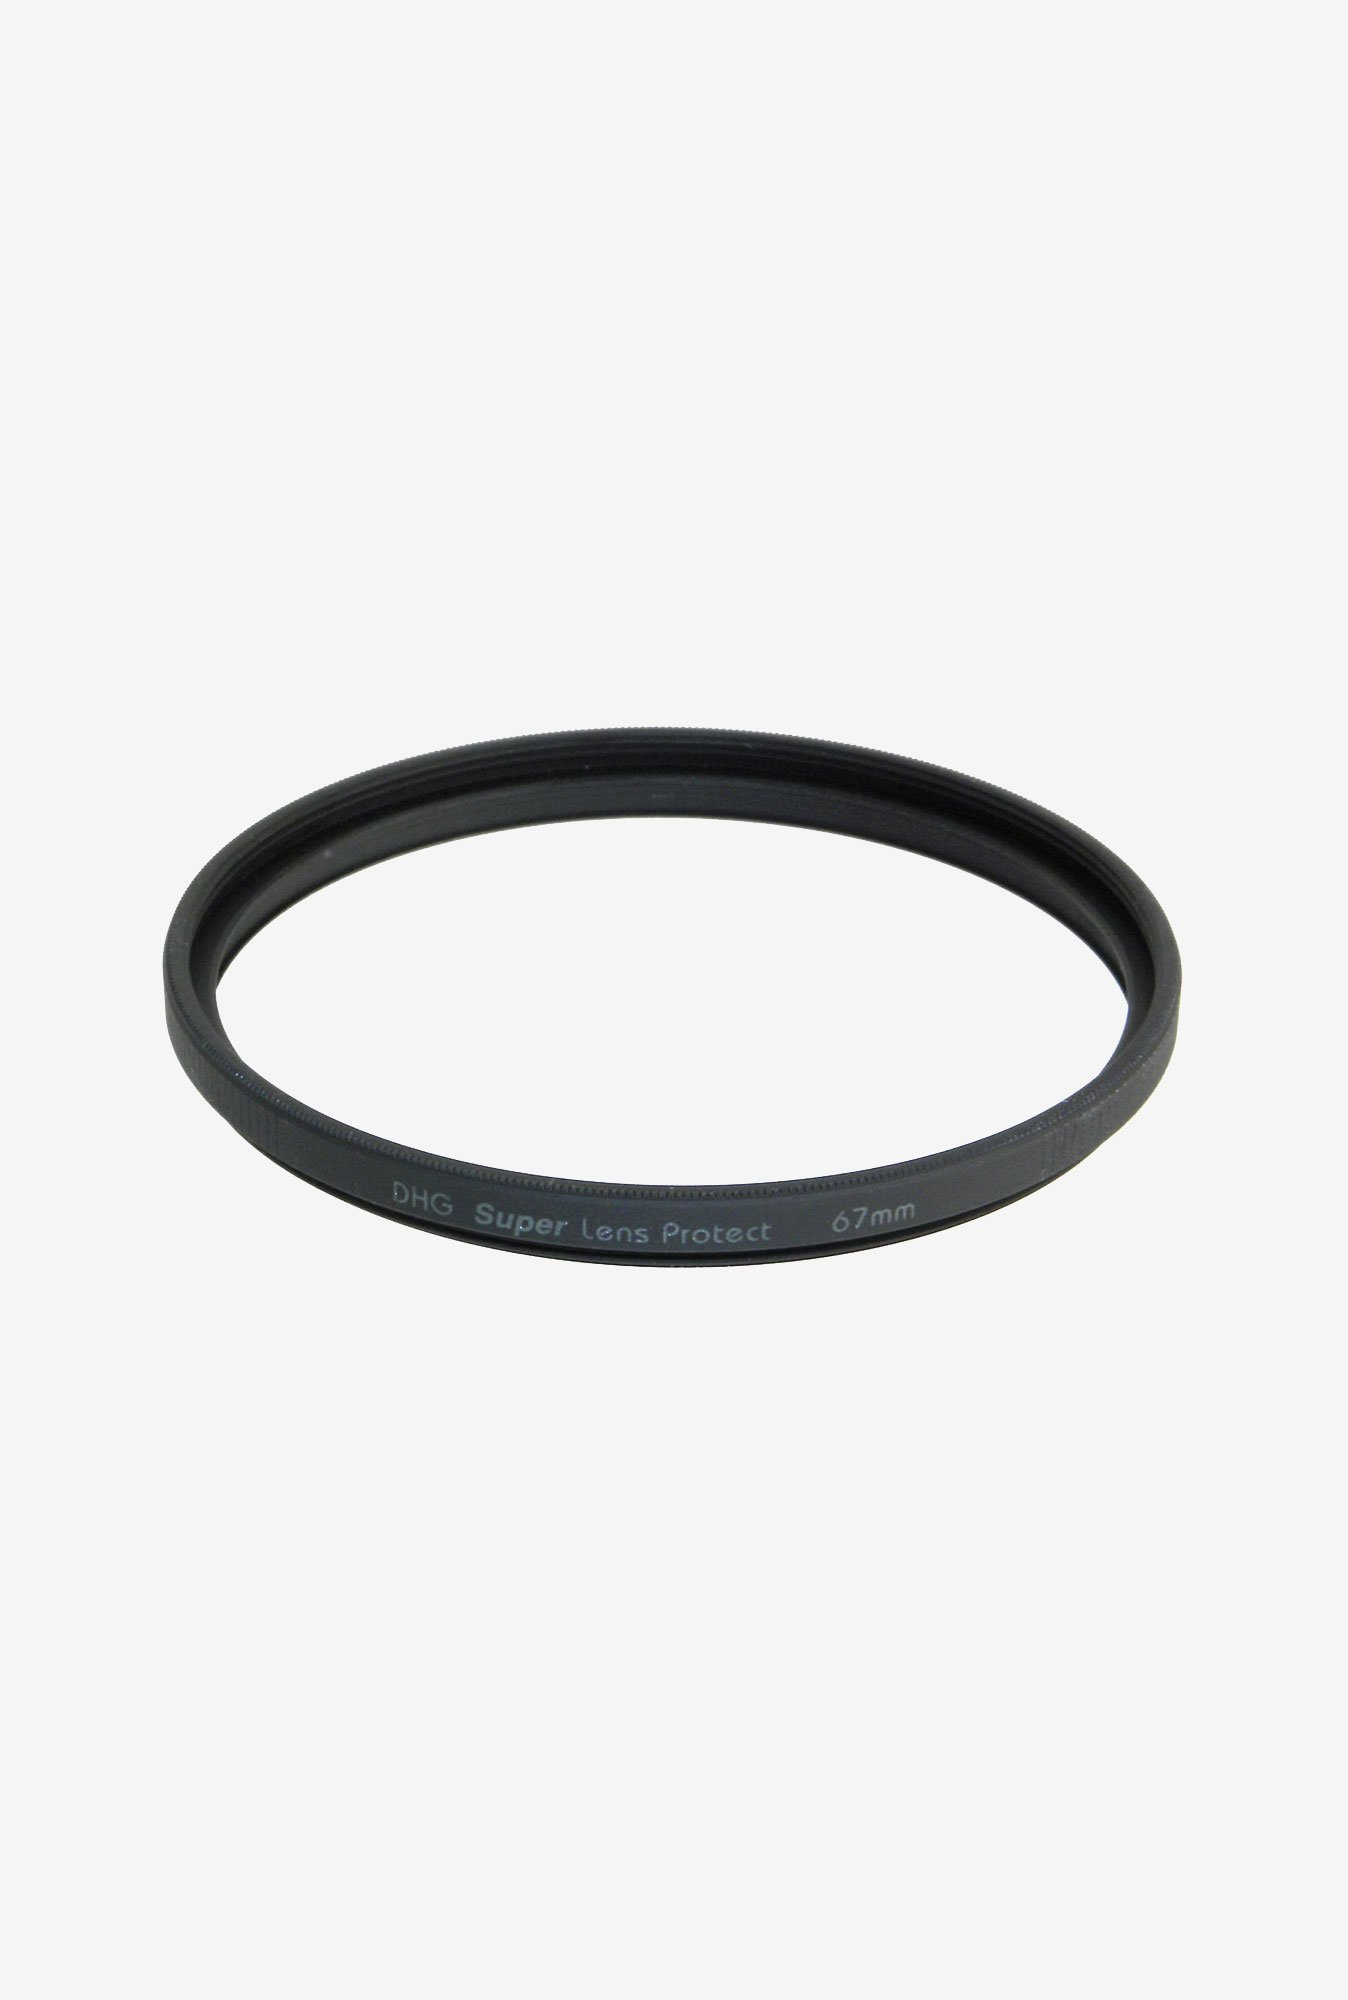 Marumi 67mm DHG MC Lens Protect Slim Safety Filter (Black)